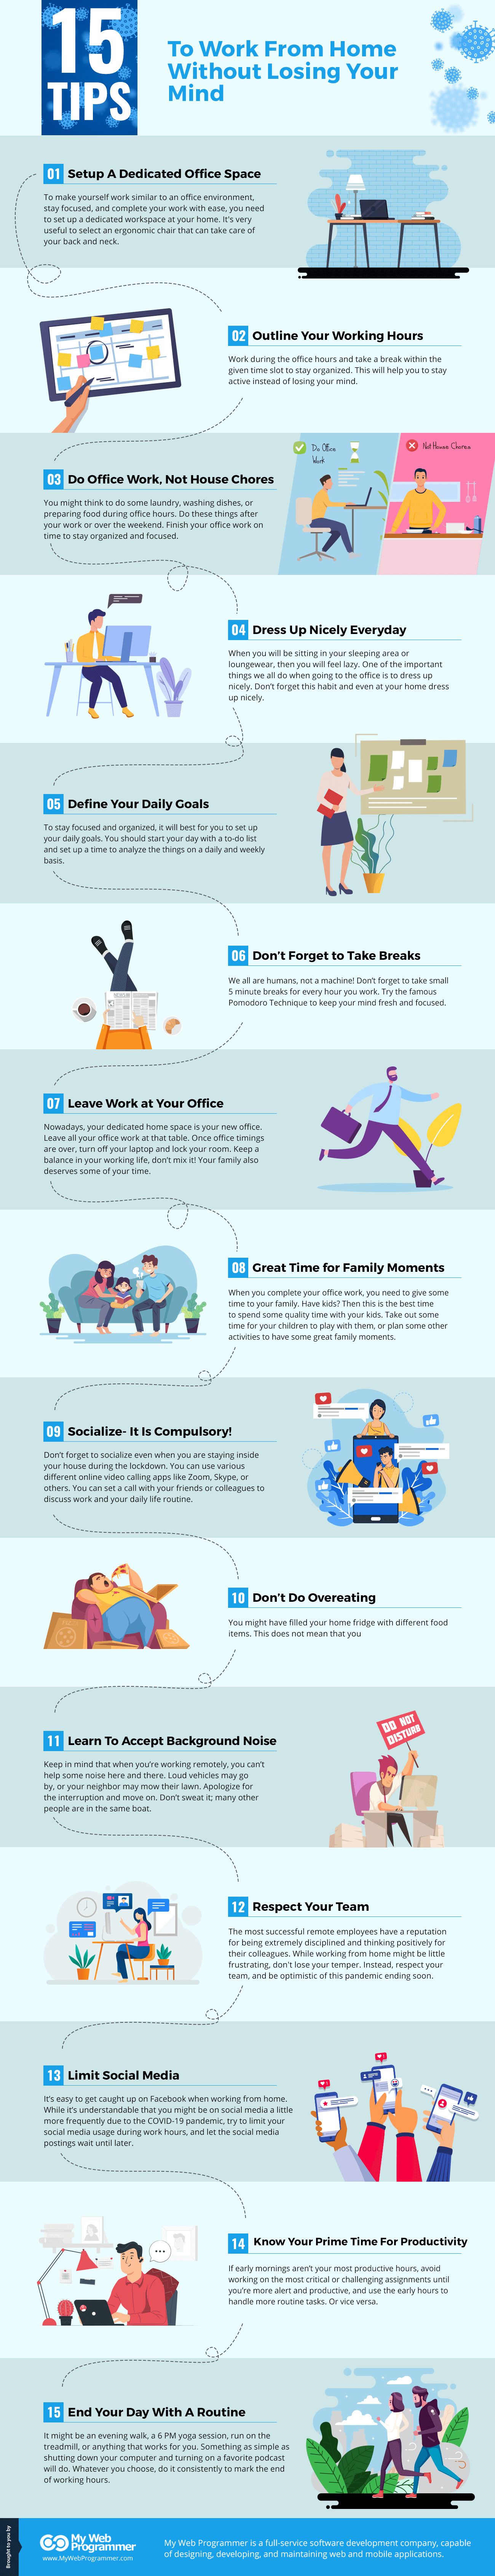 15 Tips To Work From Home Infographic